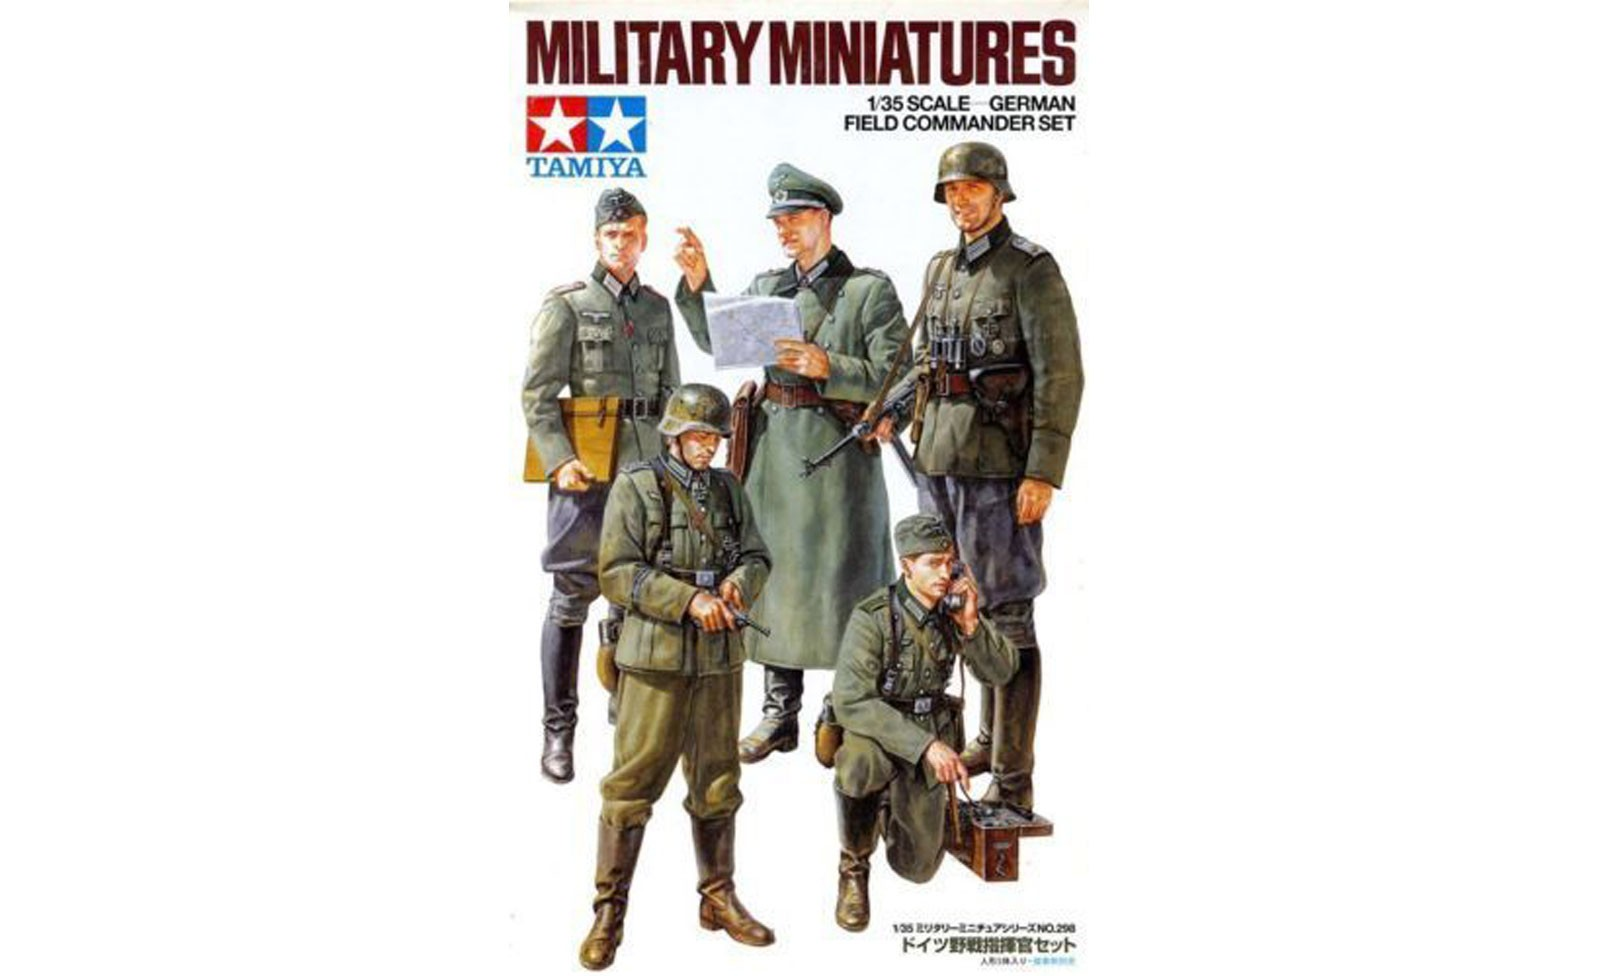 German Field Commander Set - Tamiya 35298 - plastic model kit - 1/35 scale